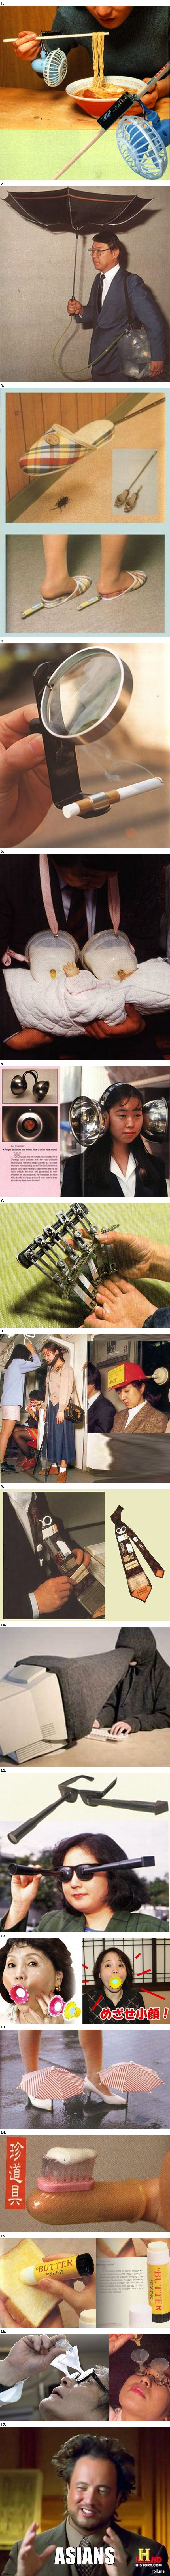 Les inventions japonaises les plus ridicules #2